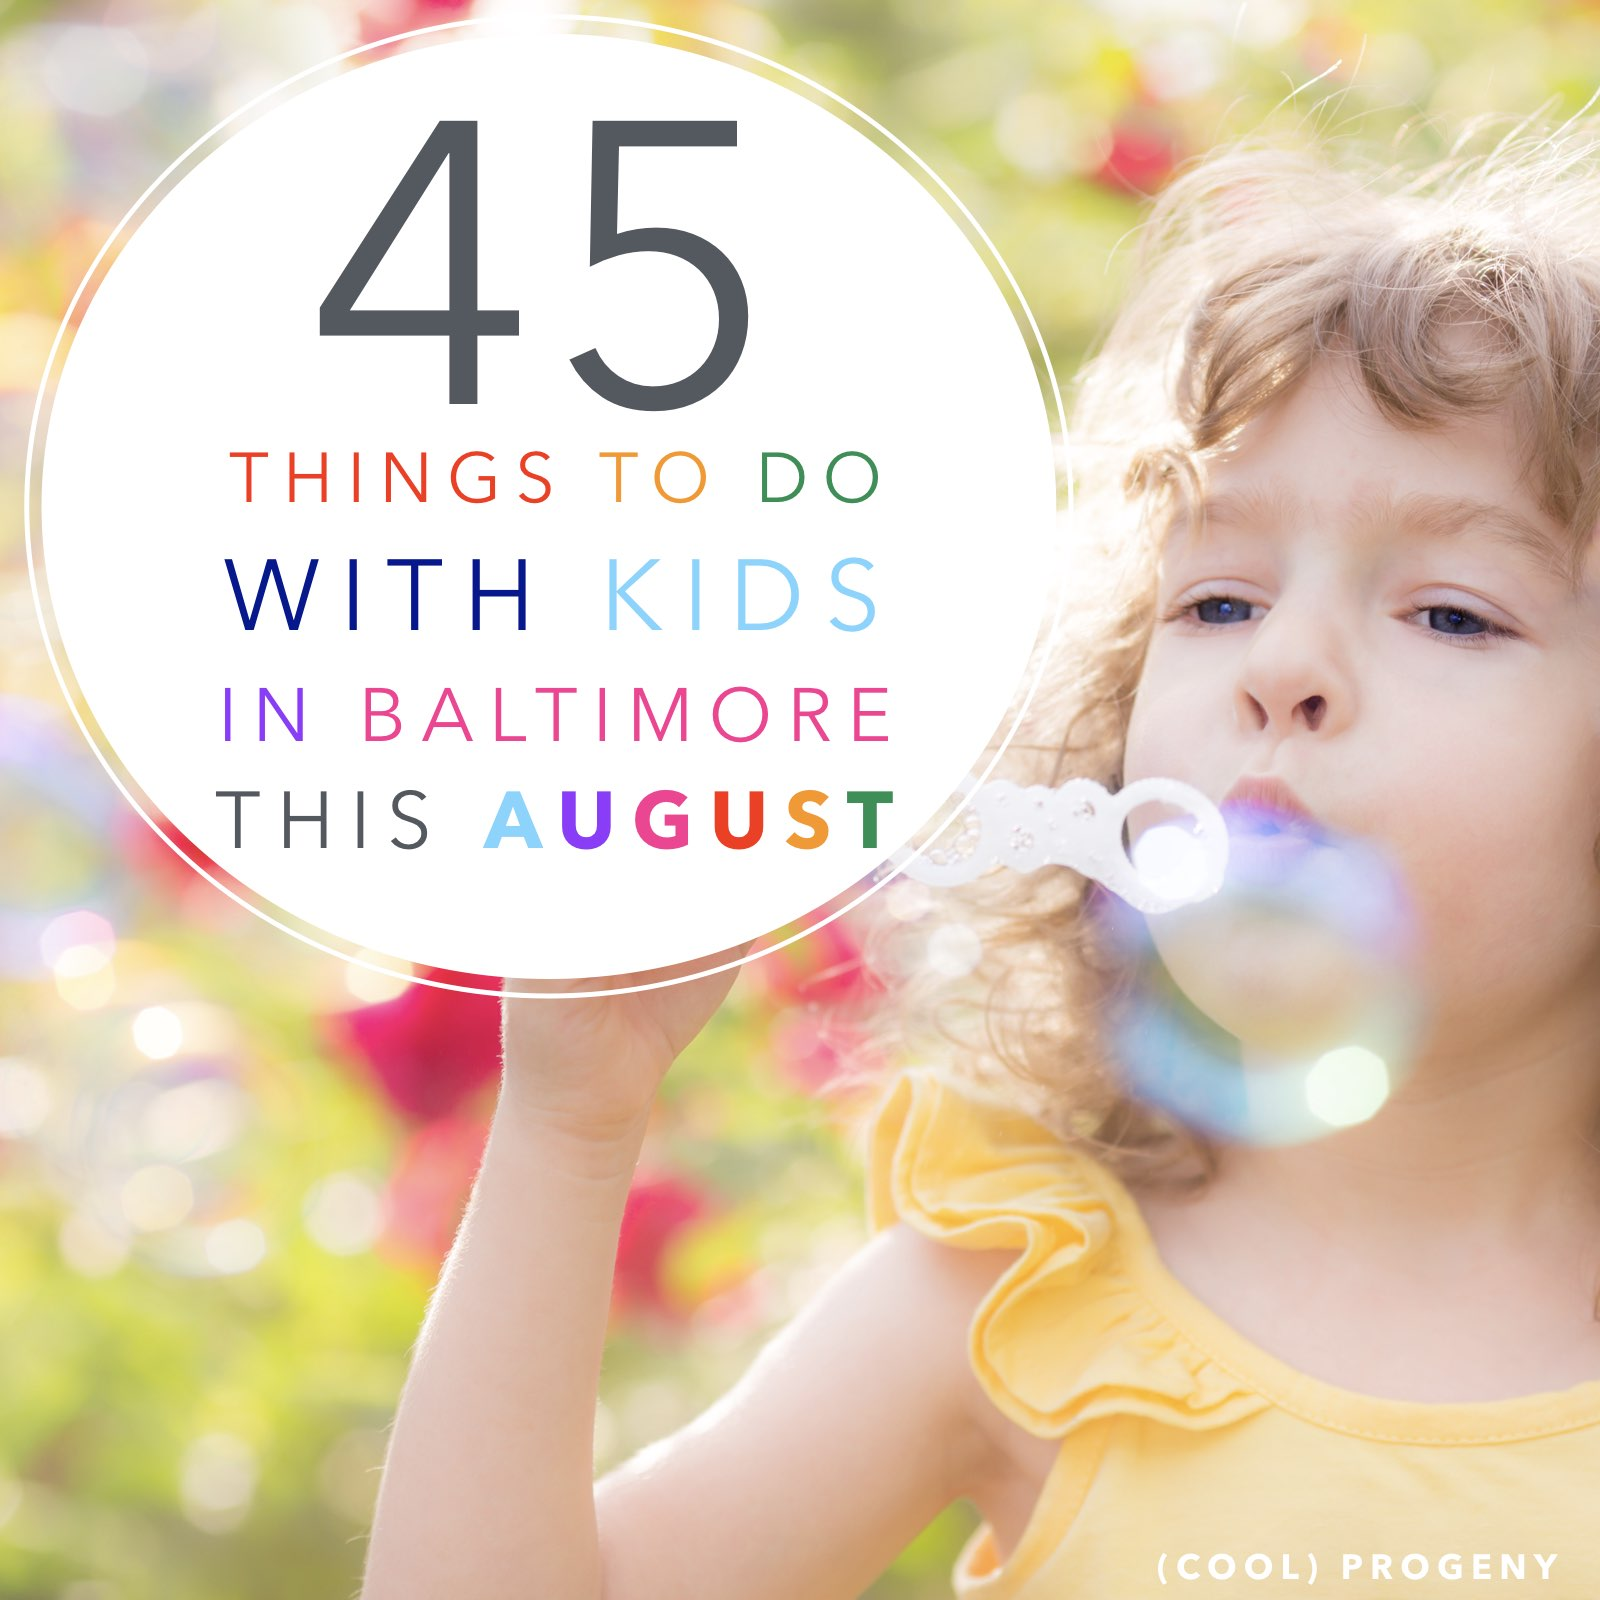 45 Things To Do with Kids in Baltimore This August - (cool) progeny